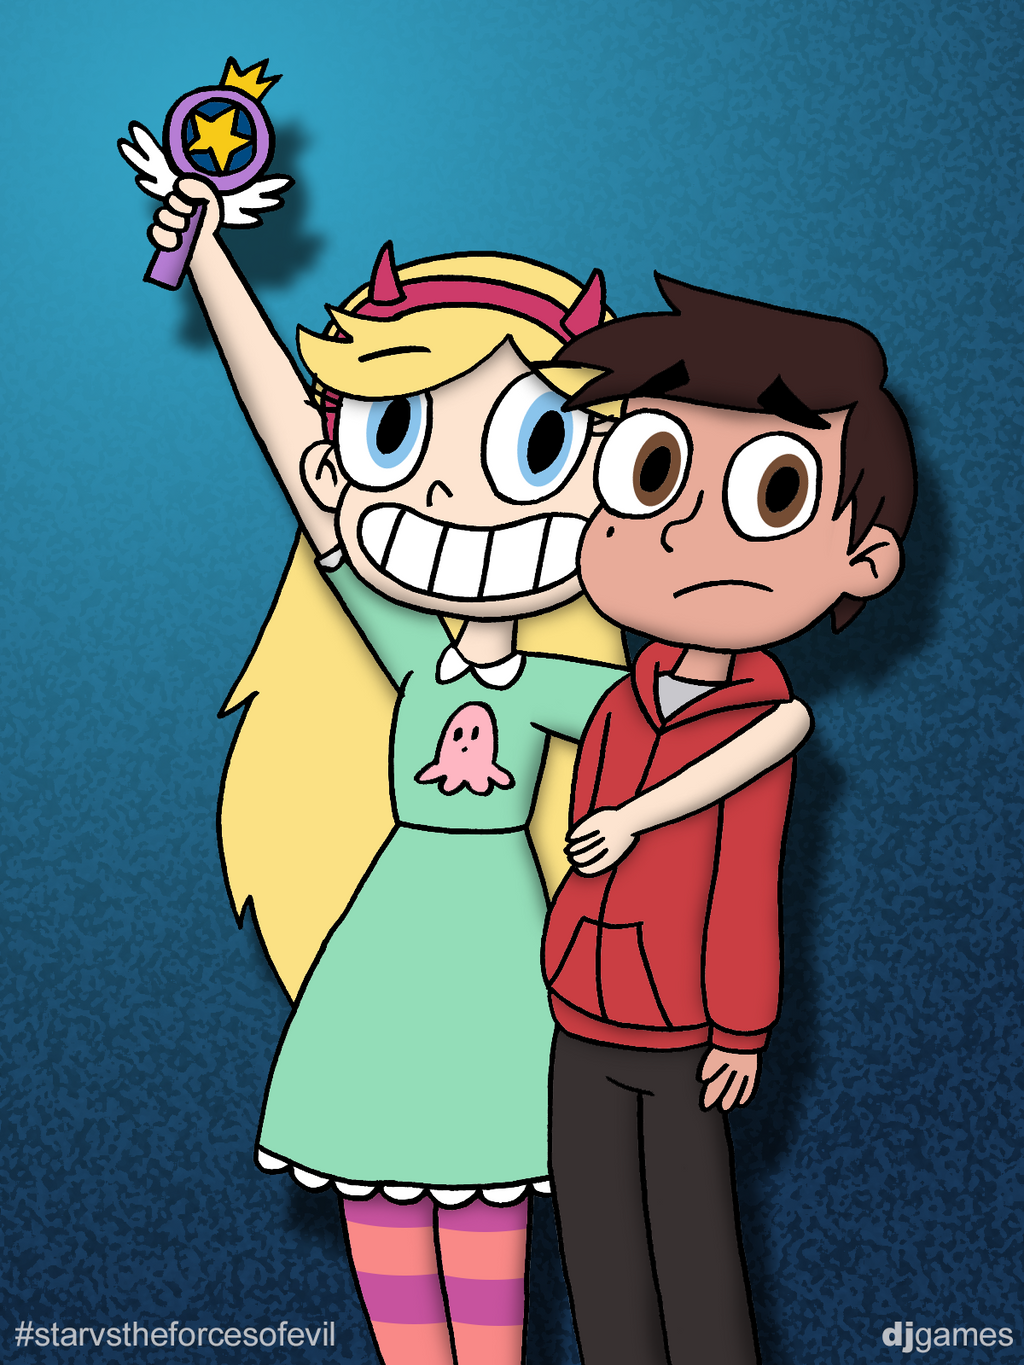 Star and marco by djgames on deviantart - Djgames deviantart ...